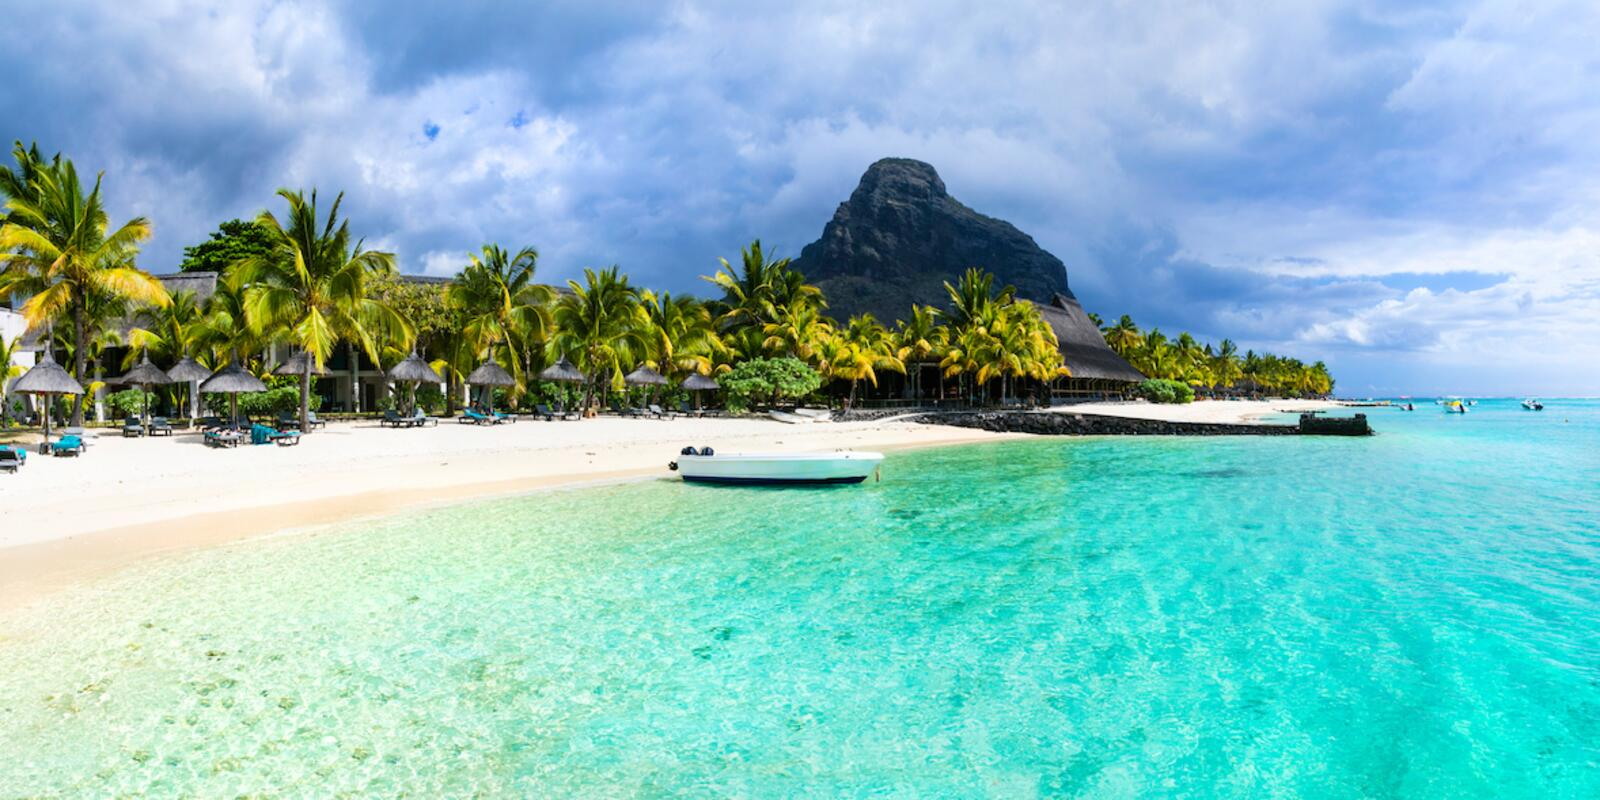 Crociera Premium 4 giorni in Catamarano con hostess - Tutto Incluso - Mauritius/La Morne